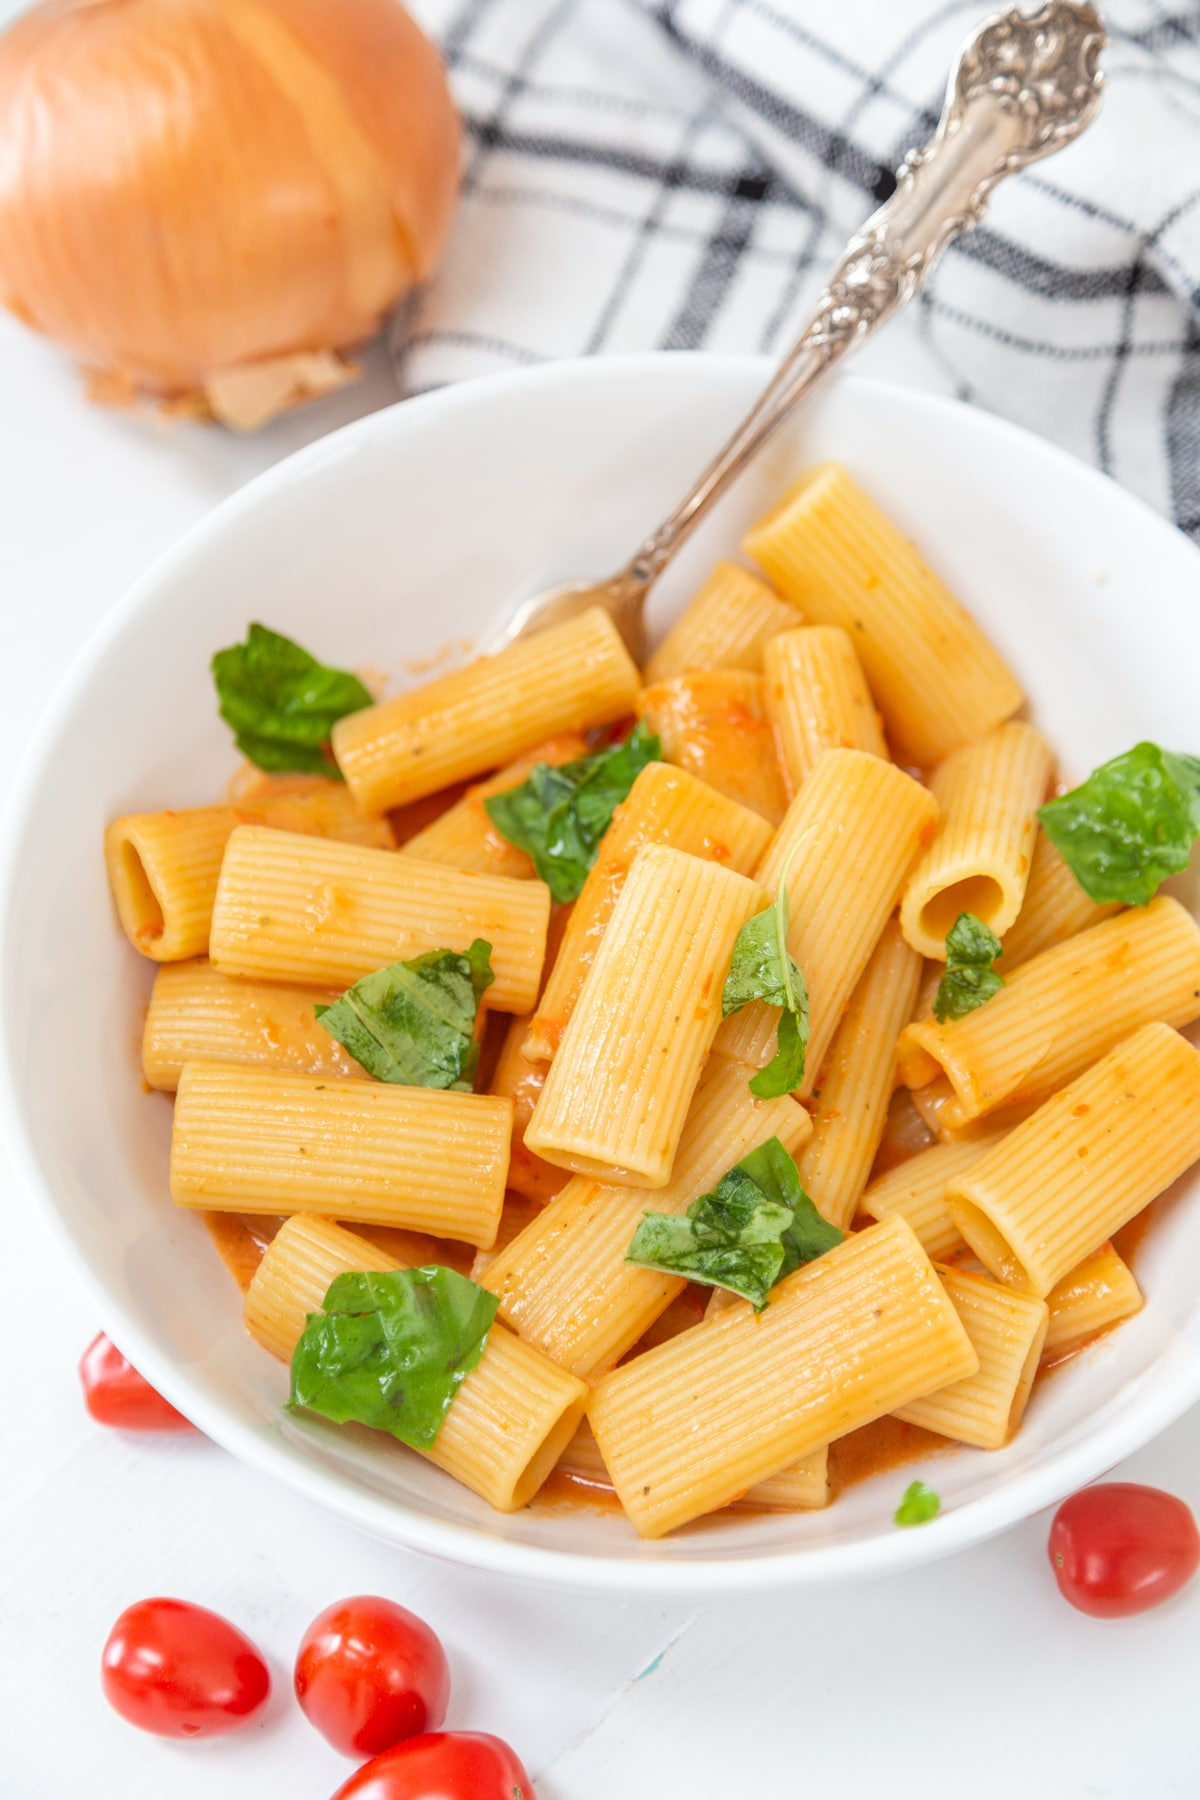 A white bowl with rigatoni and creamy red sauce, with cherry tomatoes and an onion next to the bowl.